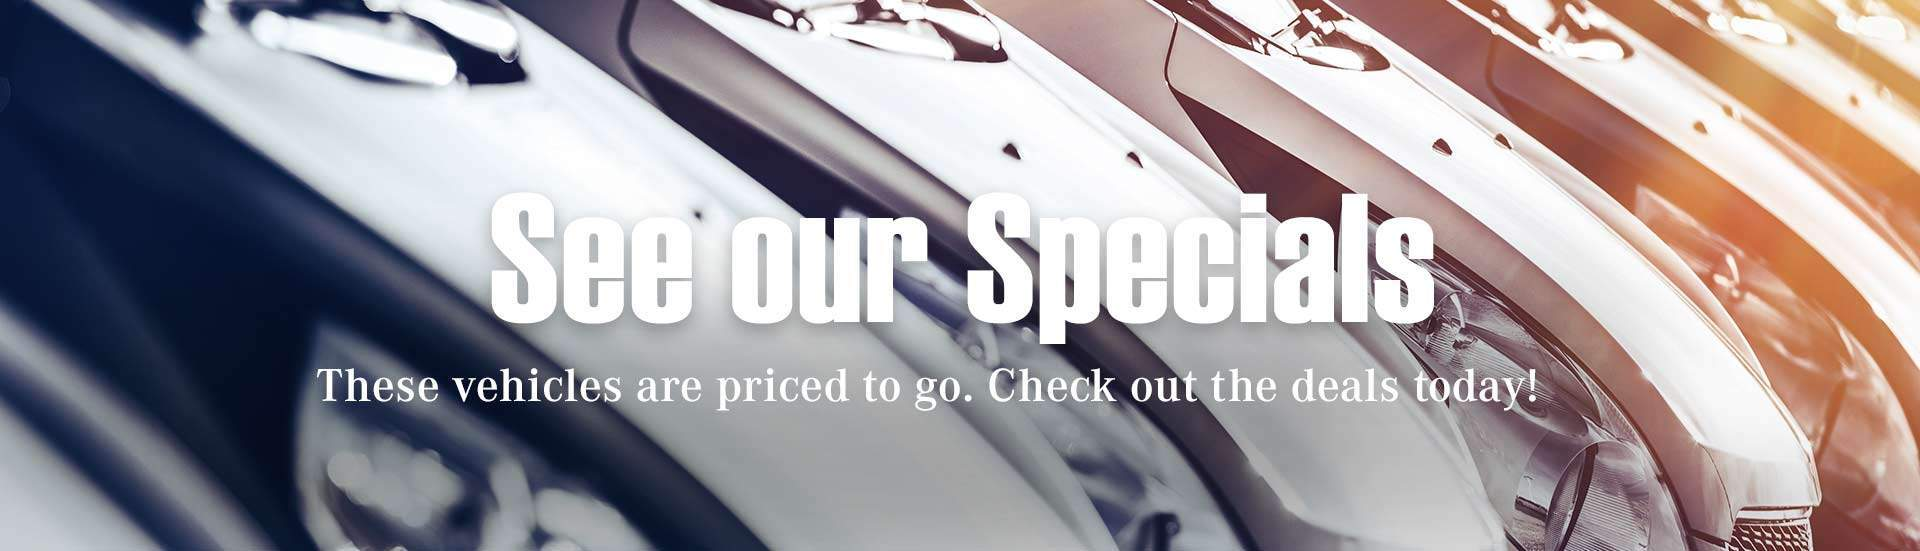 Specials at Refer Expert Auto Loan Store